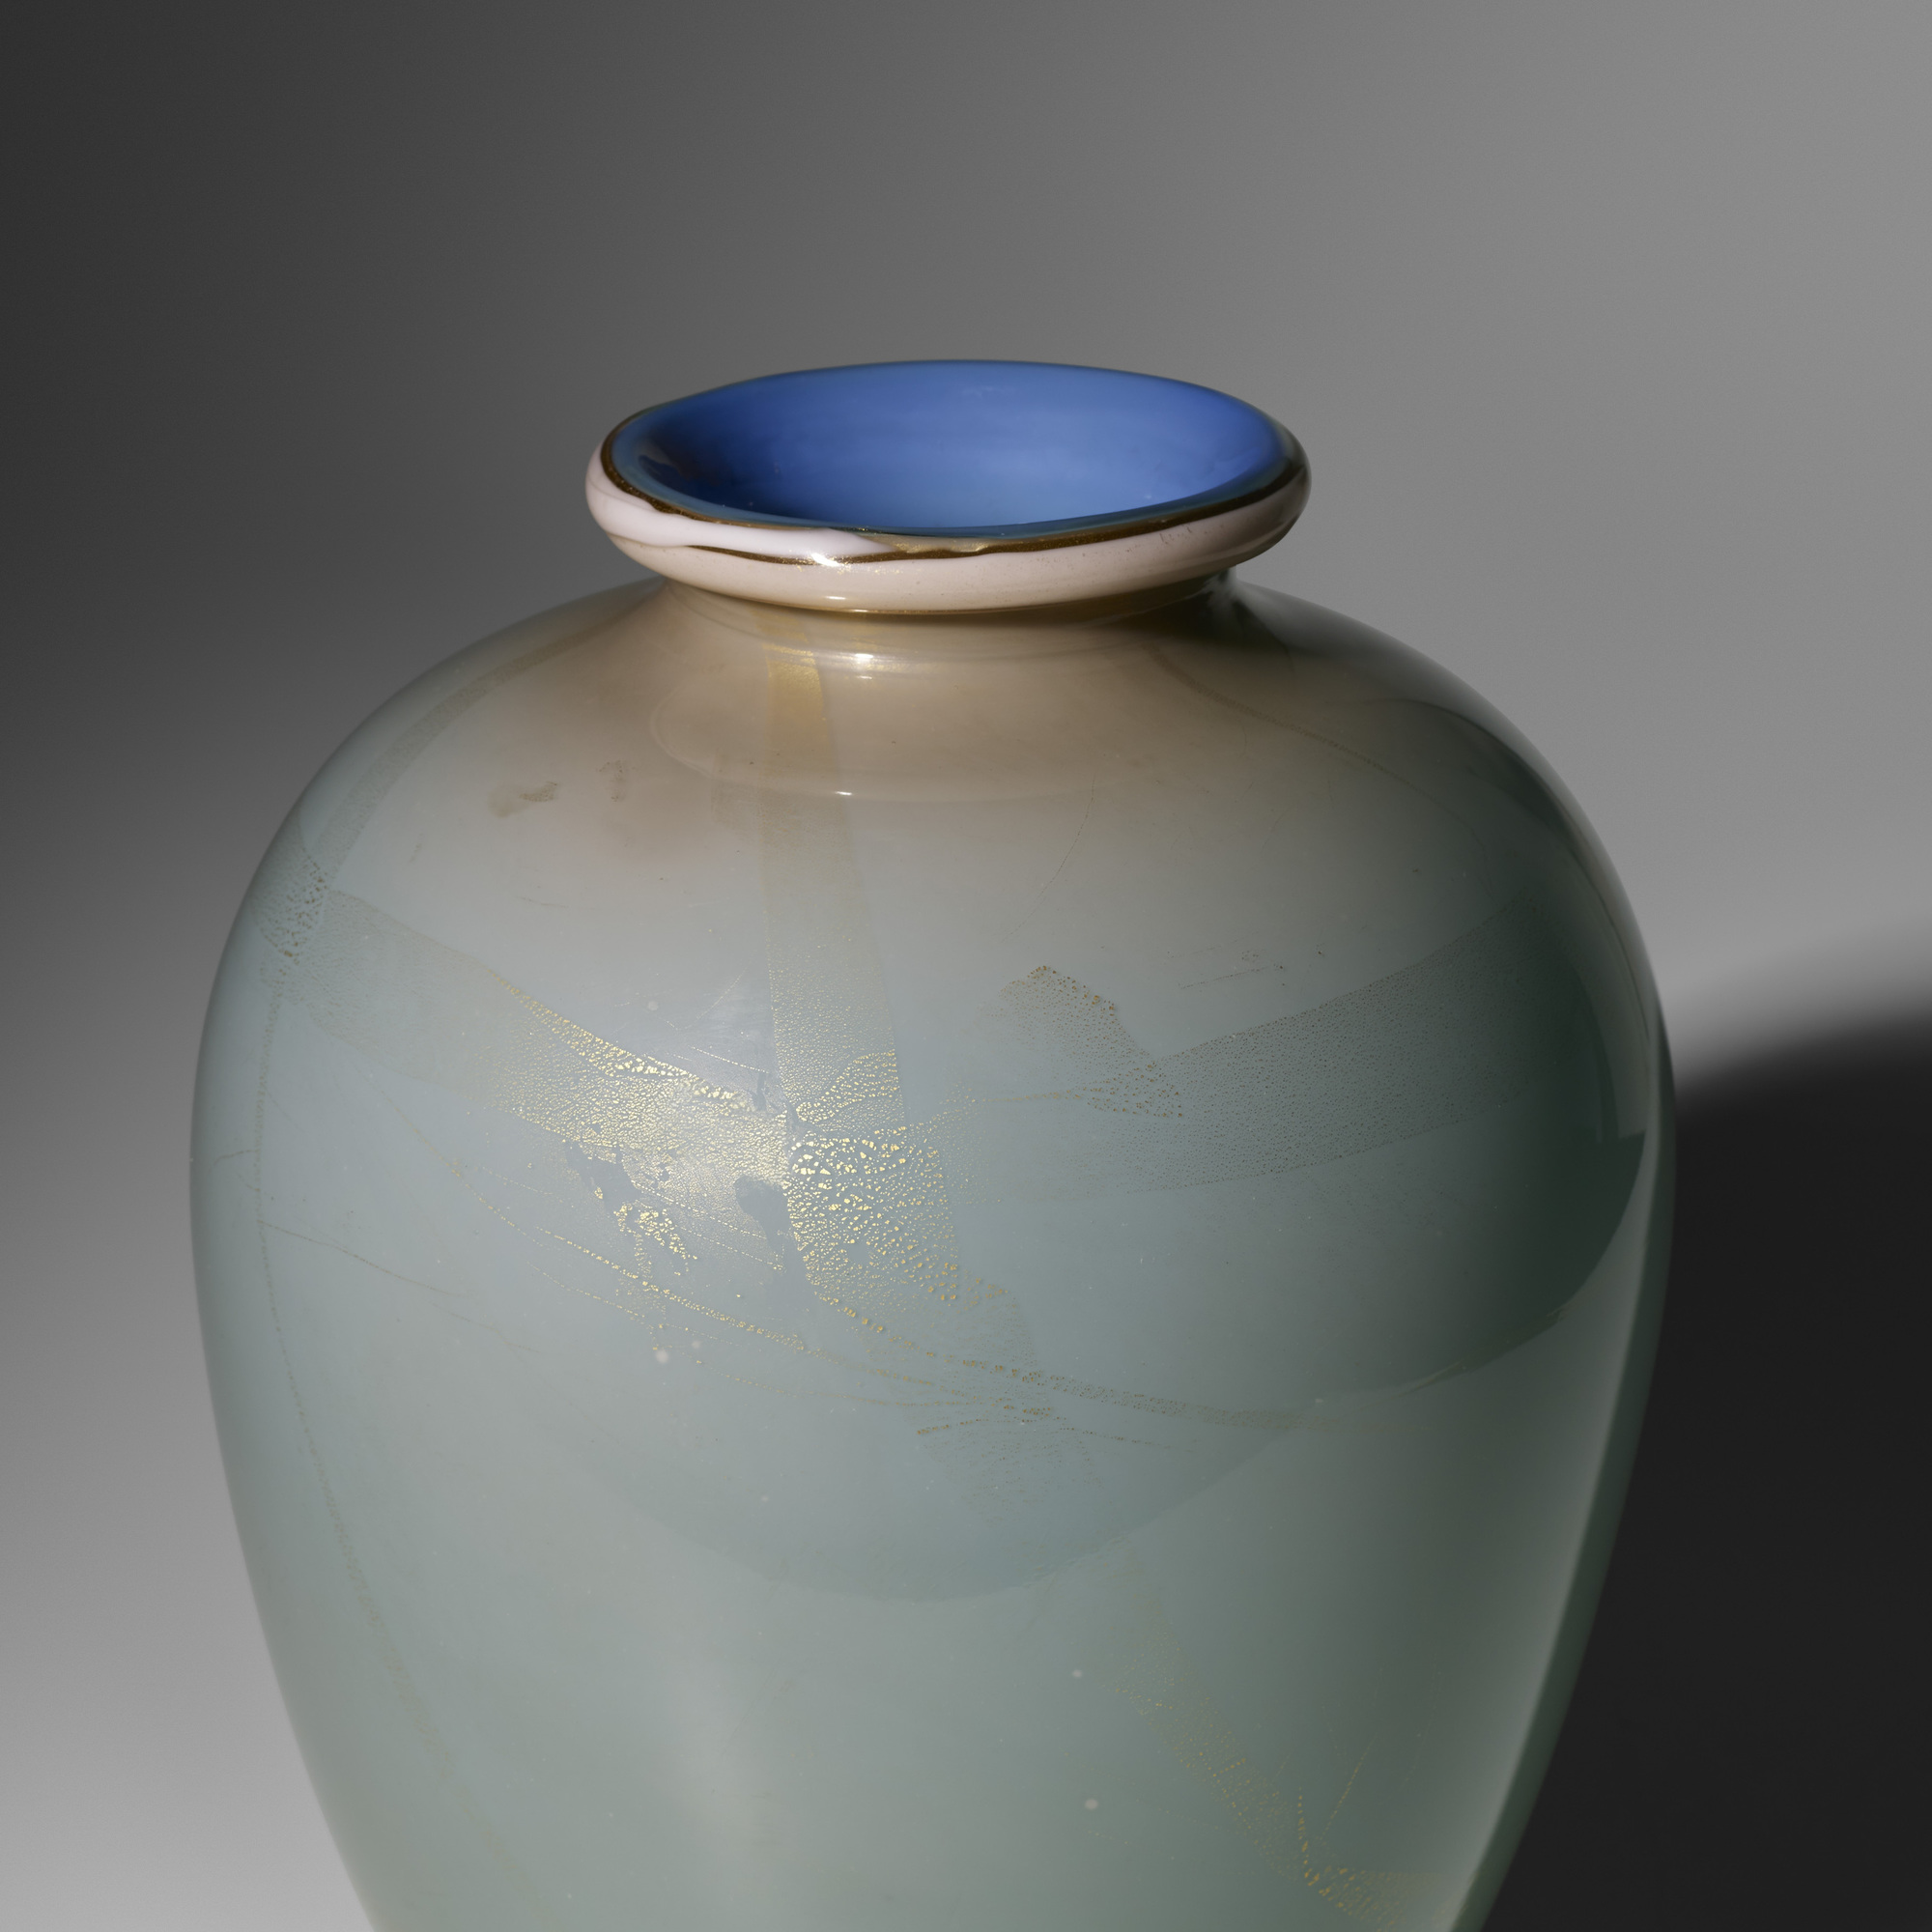 118: Tomaso Buzzi / monumental Alga vase, model 1872 (2 of 3)